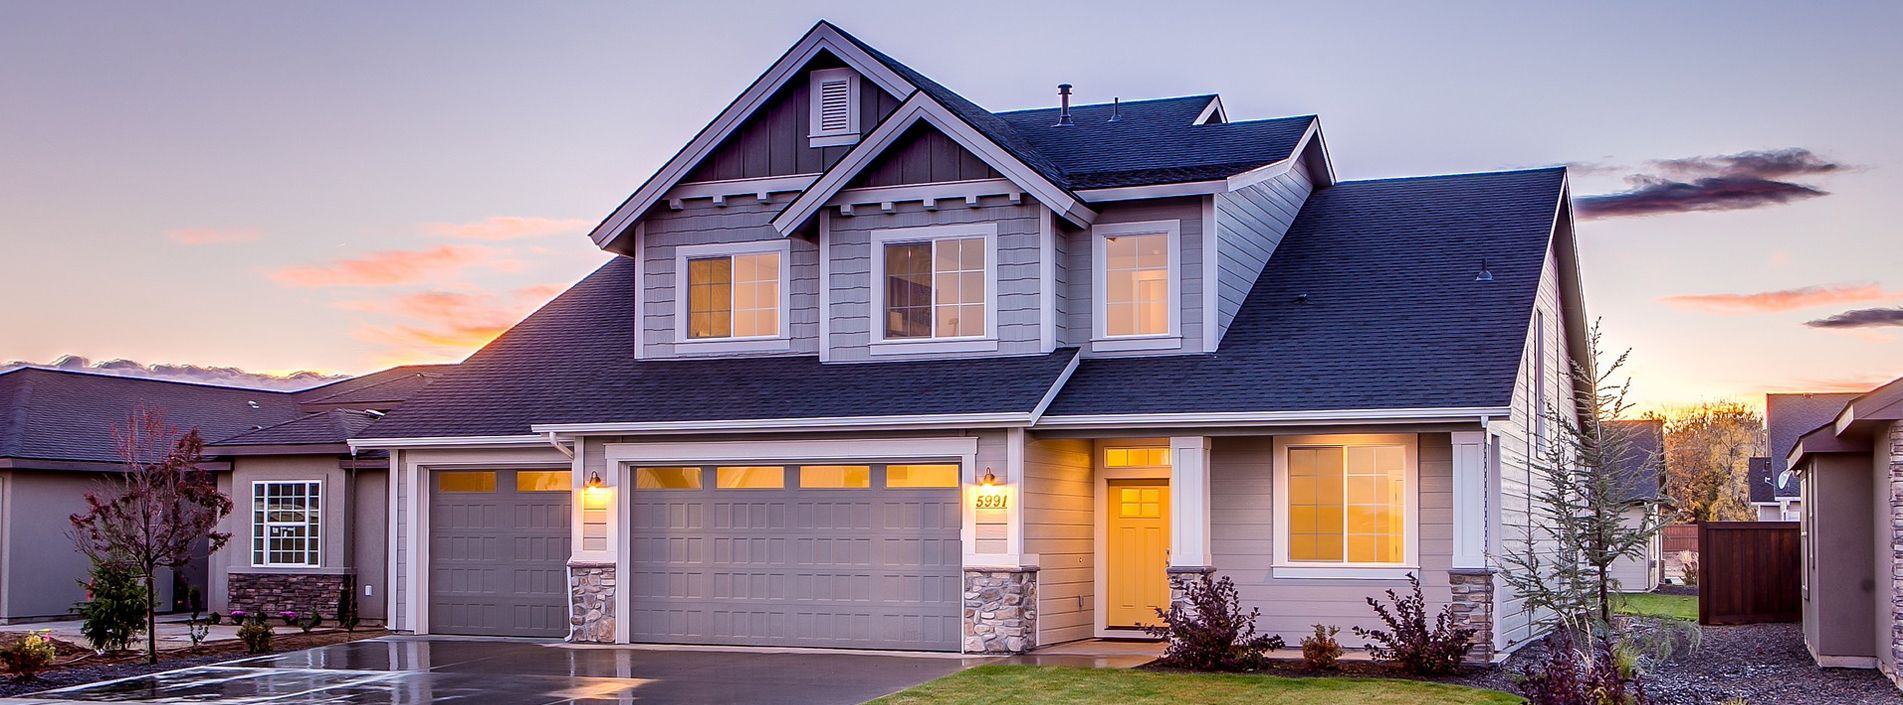 Home Skyyguard Residential And Commercial Roofing Roof Repair Roof Replacement Roof Insurance Claim Roof Inspe Home Loans Construction Loans House Styles